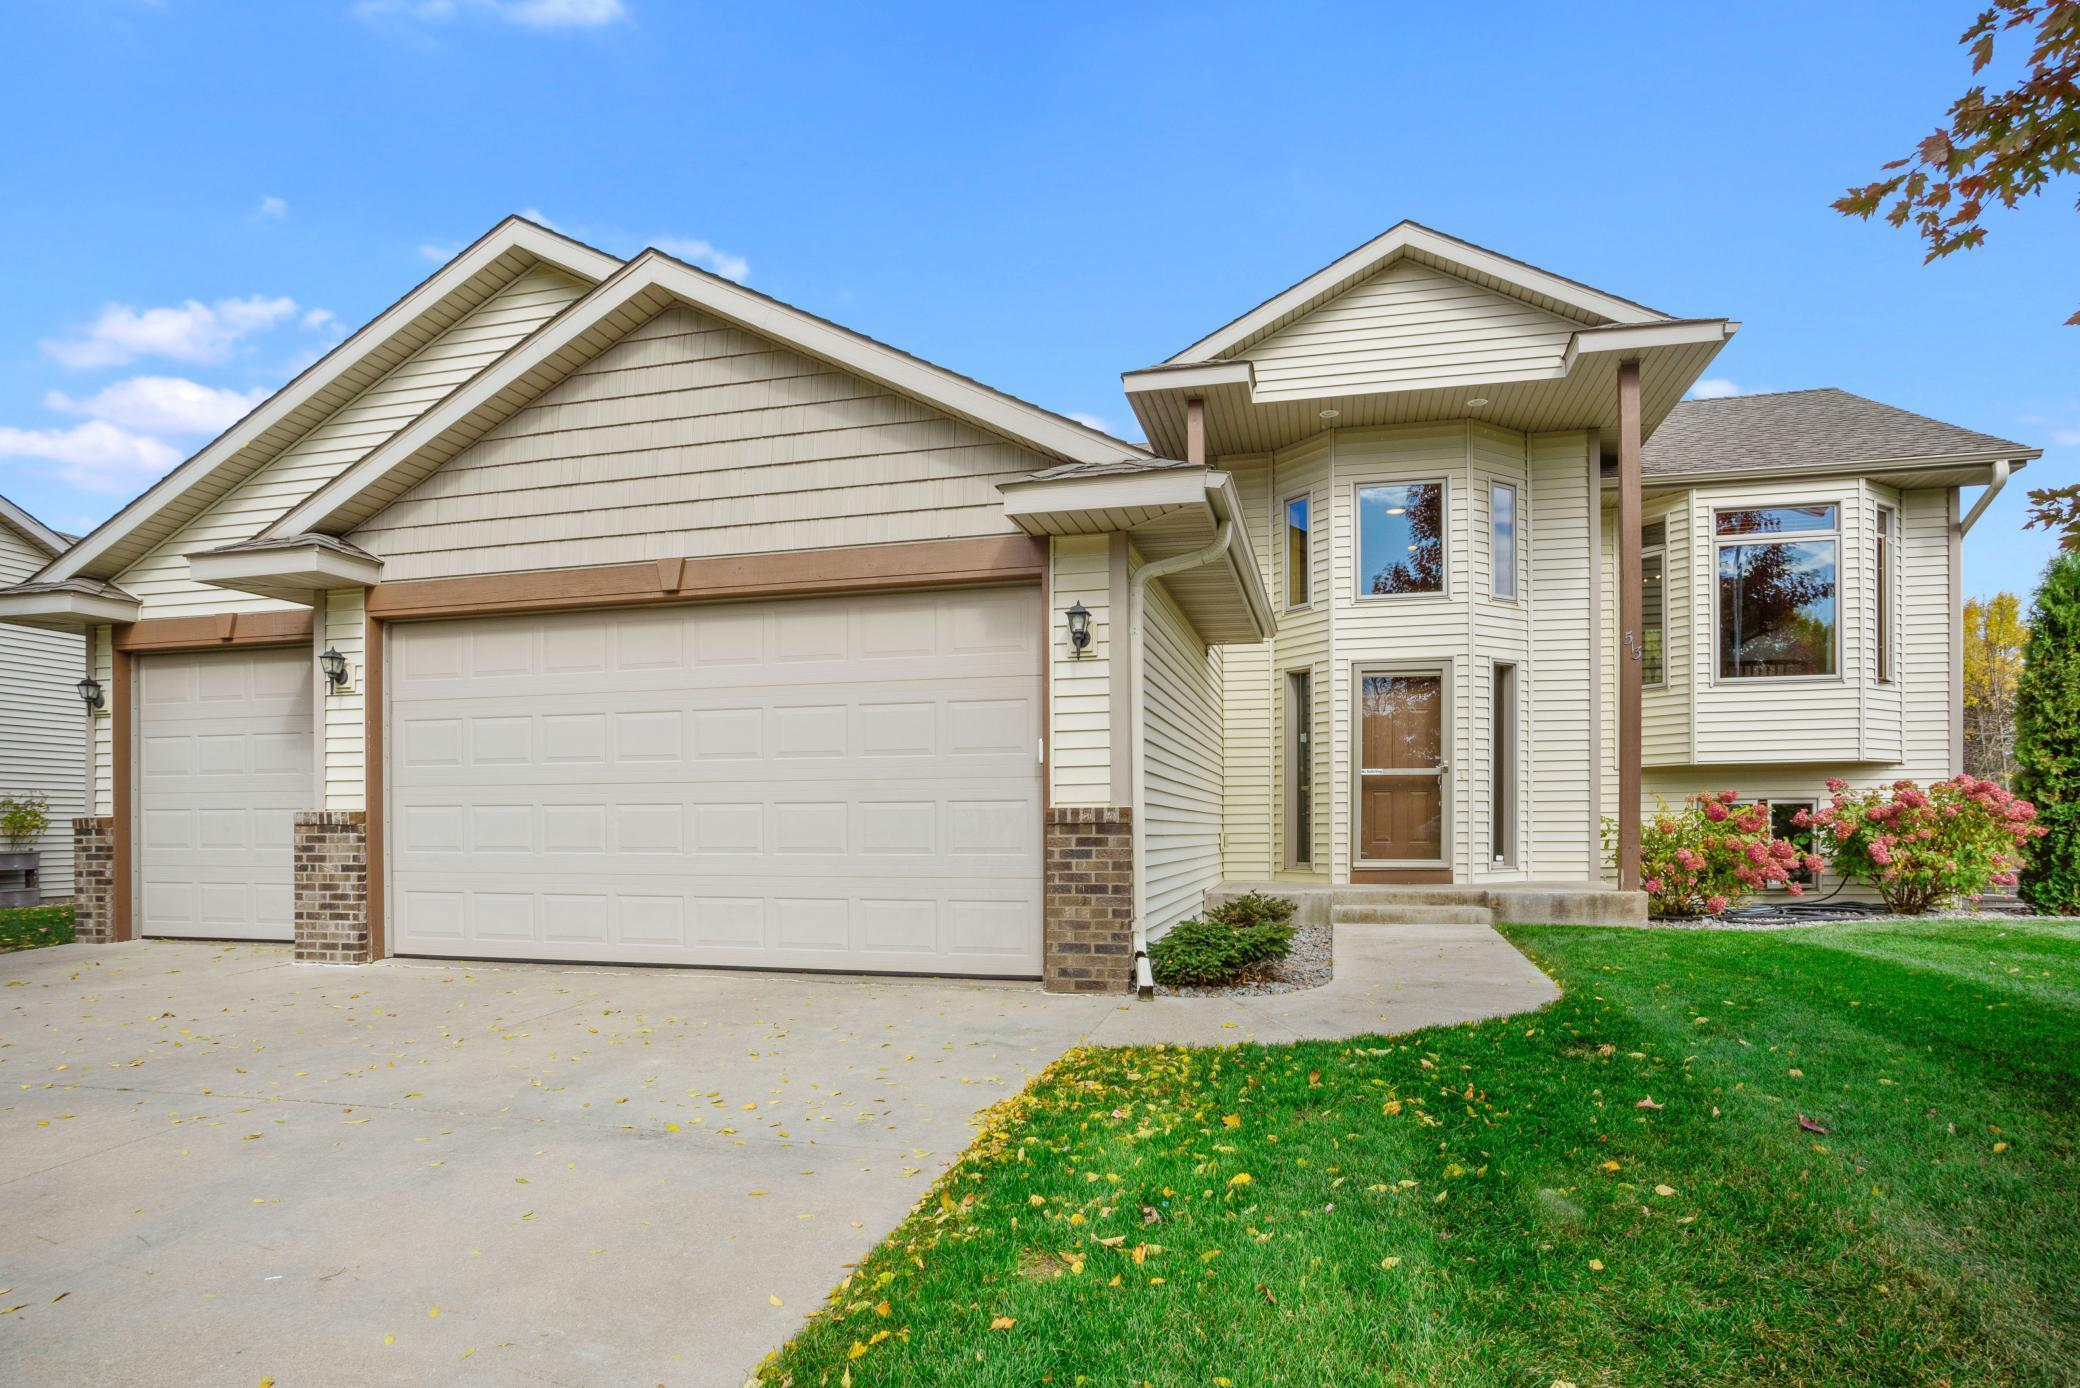 513 2nd street S Property Photo - Montrose, MN real estate listing